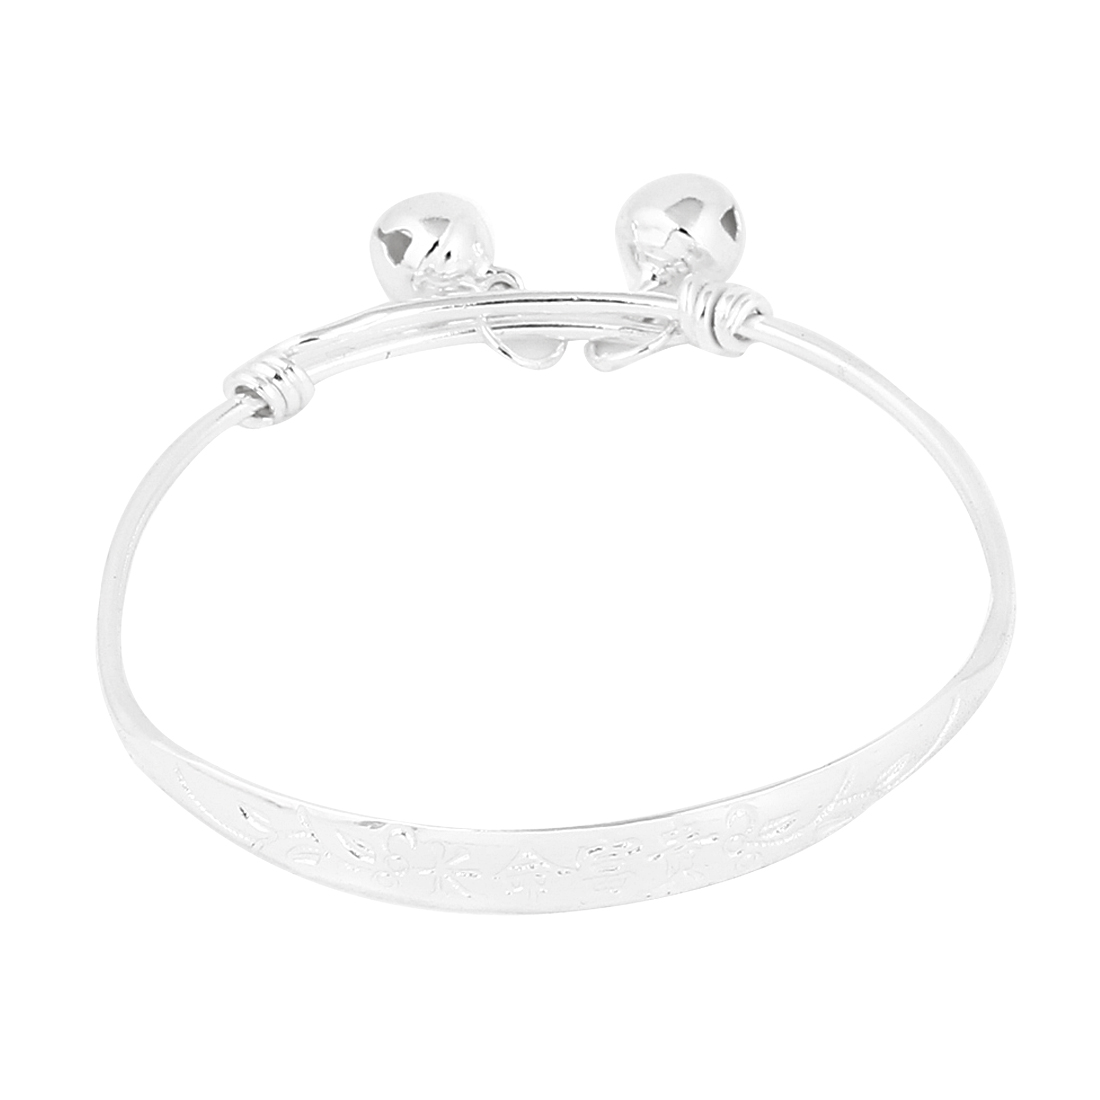 Silver Tone Metal Adjustable Anklet Bangle w Small Bell for Baby